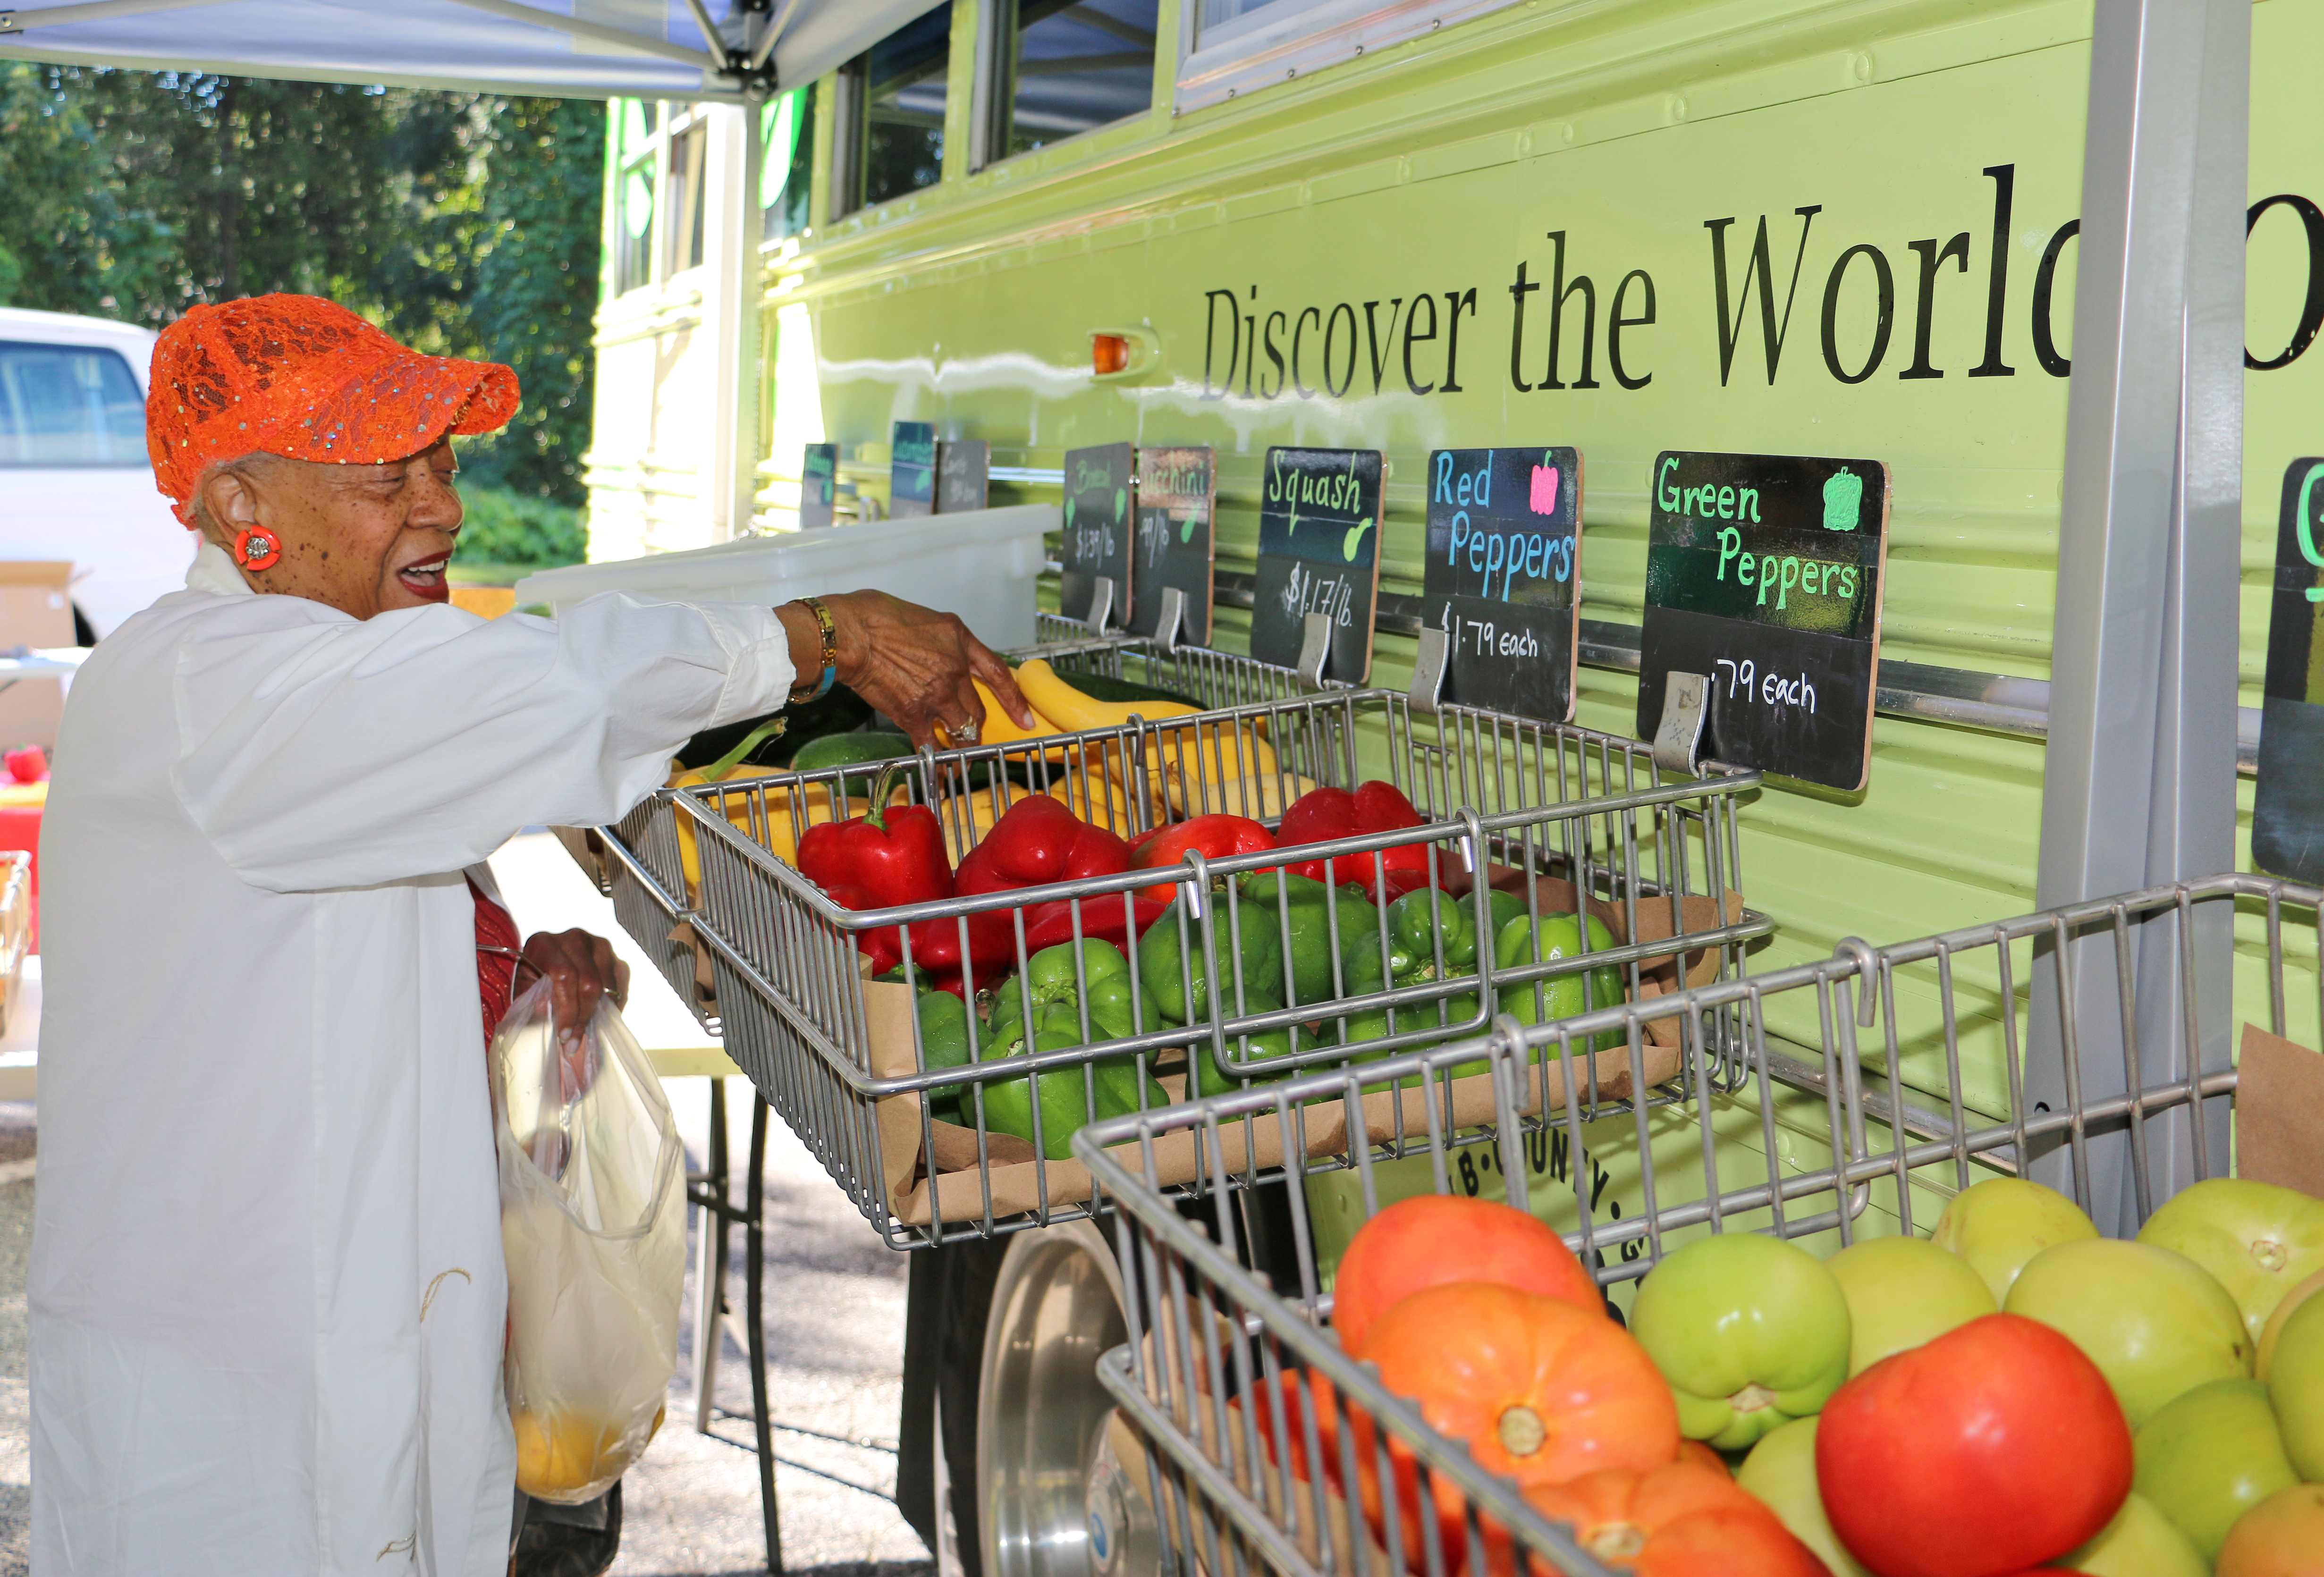 Connie Robinson browses the produce at the DeKalb County Mobile Market. The market, operated by UGA Extension in DeKalb County and the DeKalb County Board of Health, brings fresh produce to communities with limited access to fruits and vegetables.